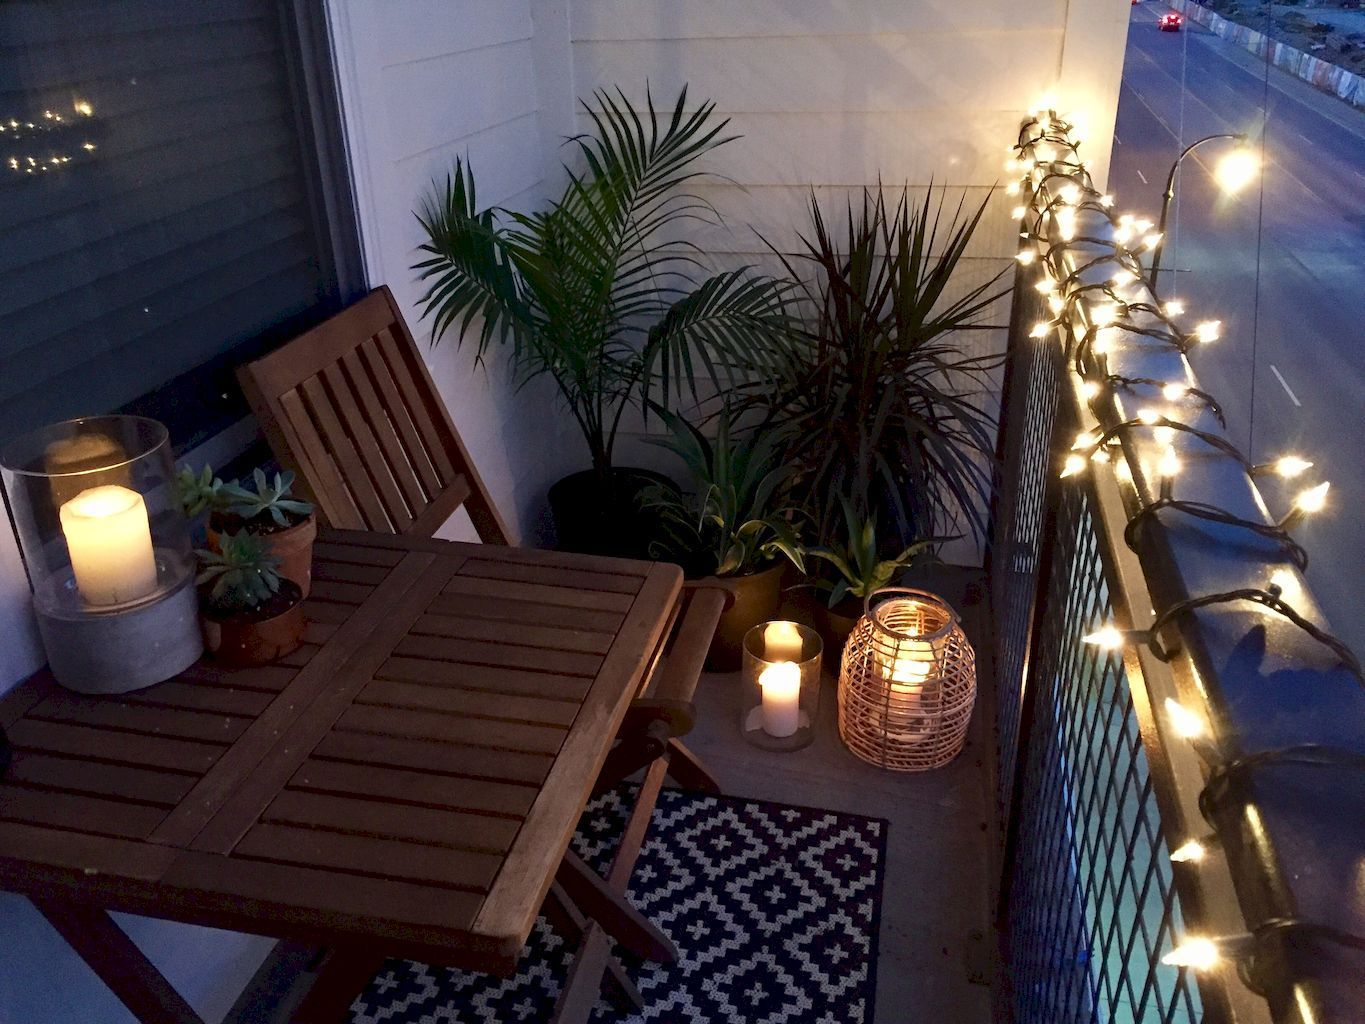 Beautiful and cozy apartment balcony decor ideas 77 Apartment decorating cheap ideas